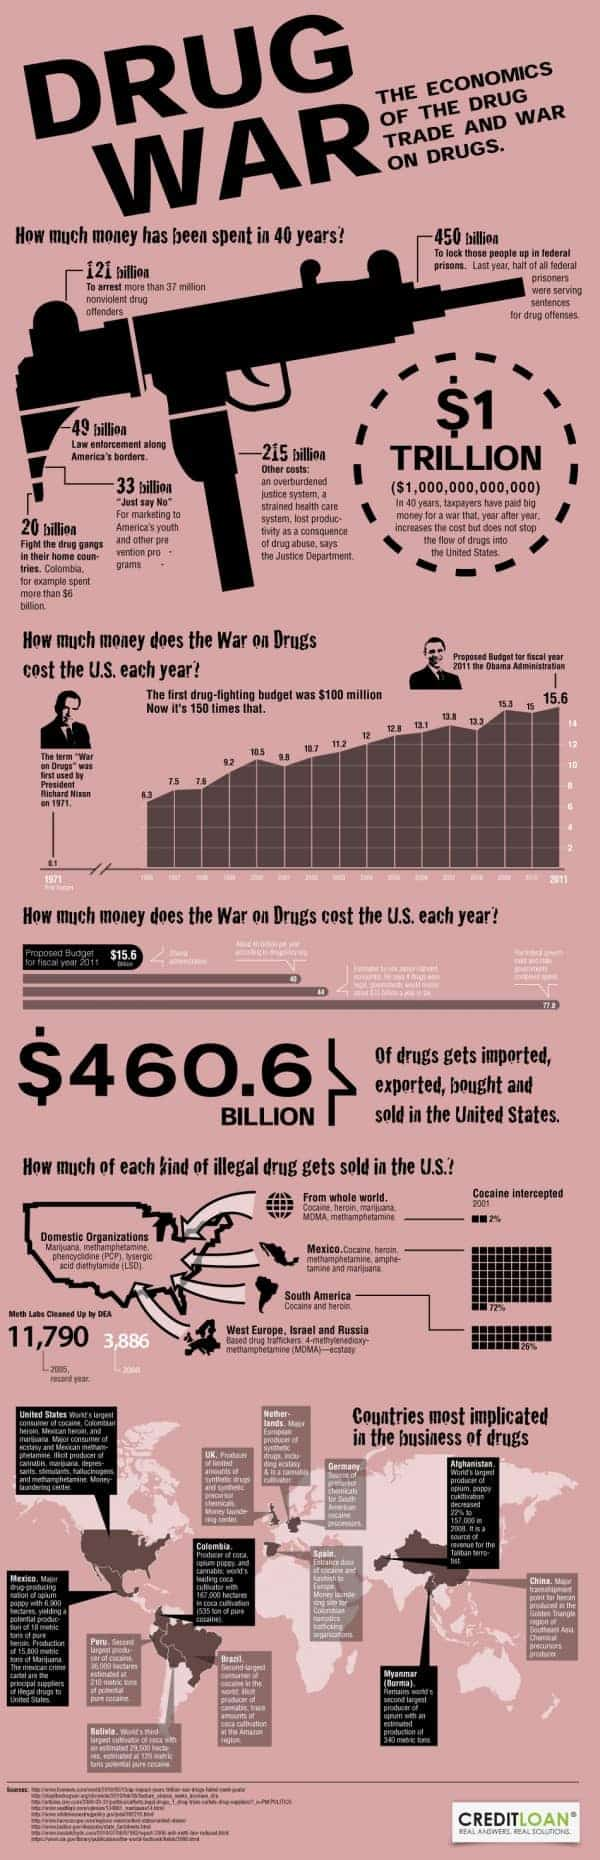 drug-wars-infographic-600x1860